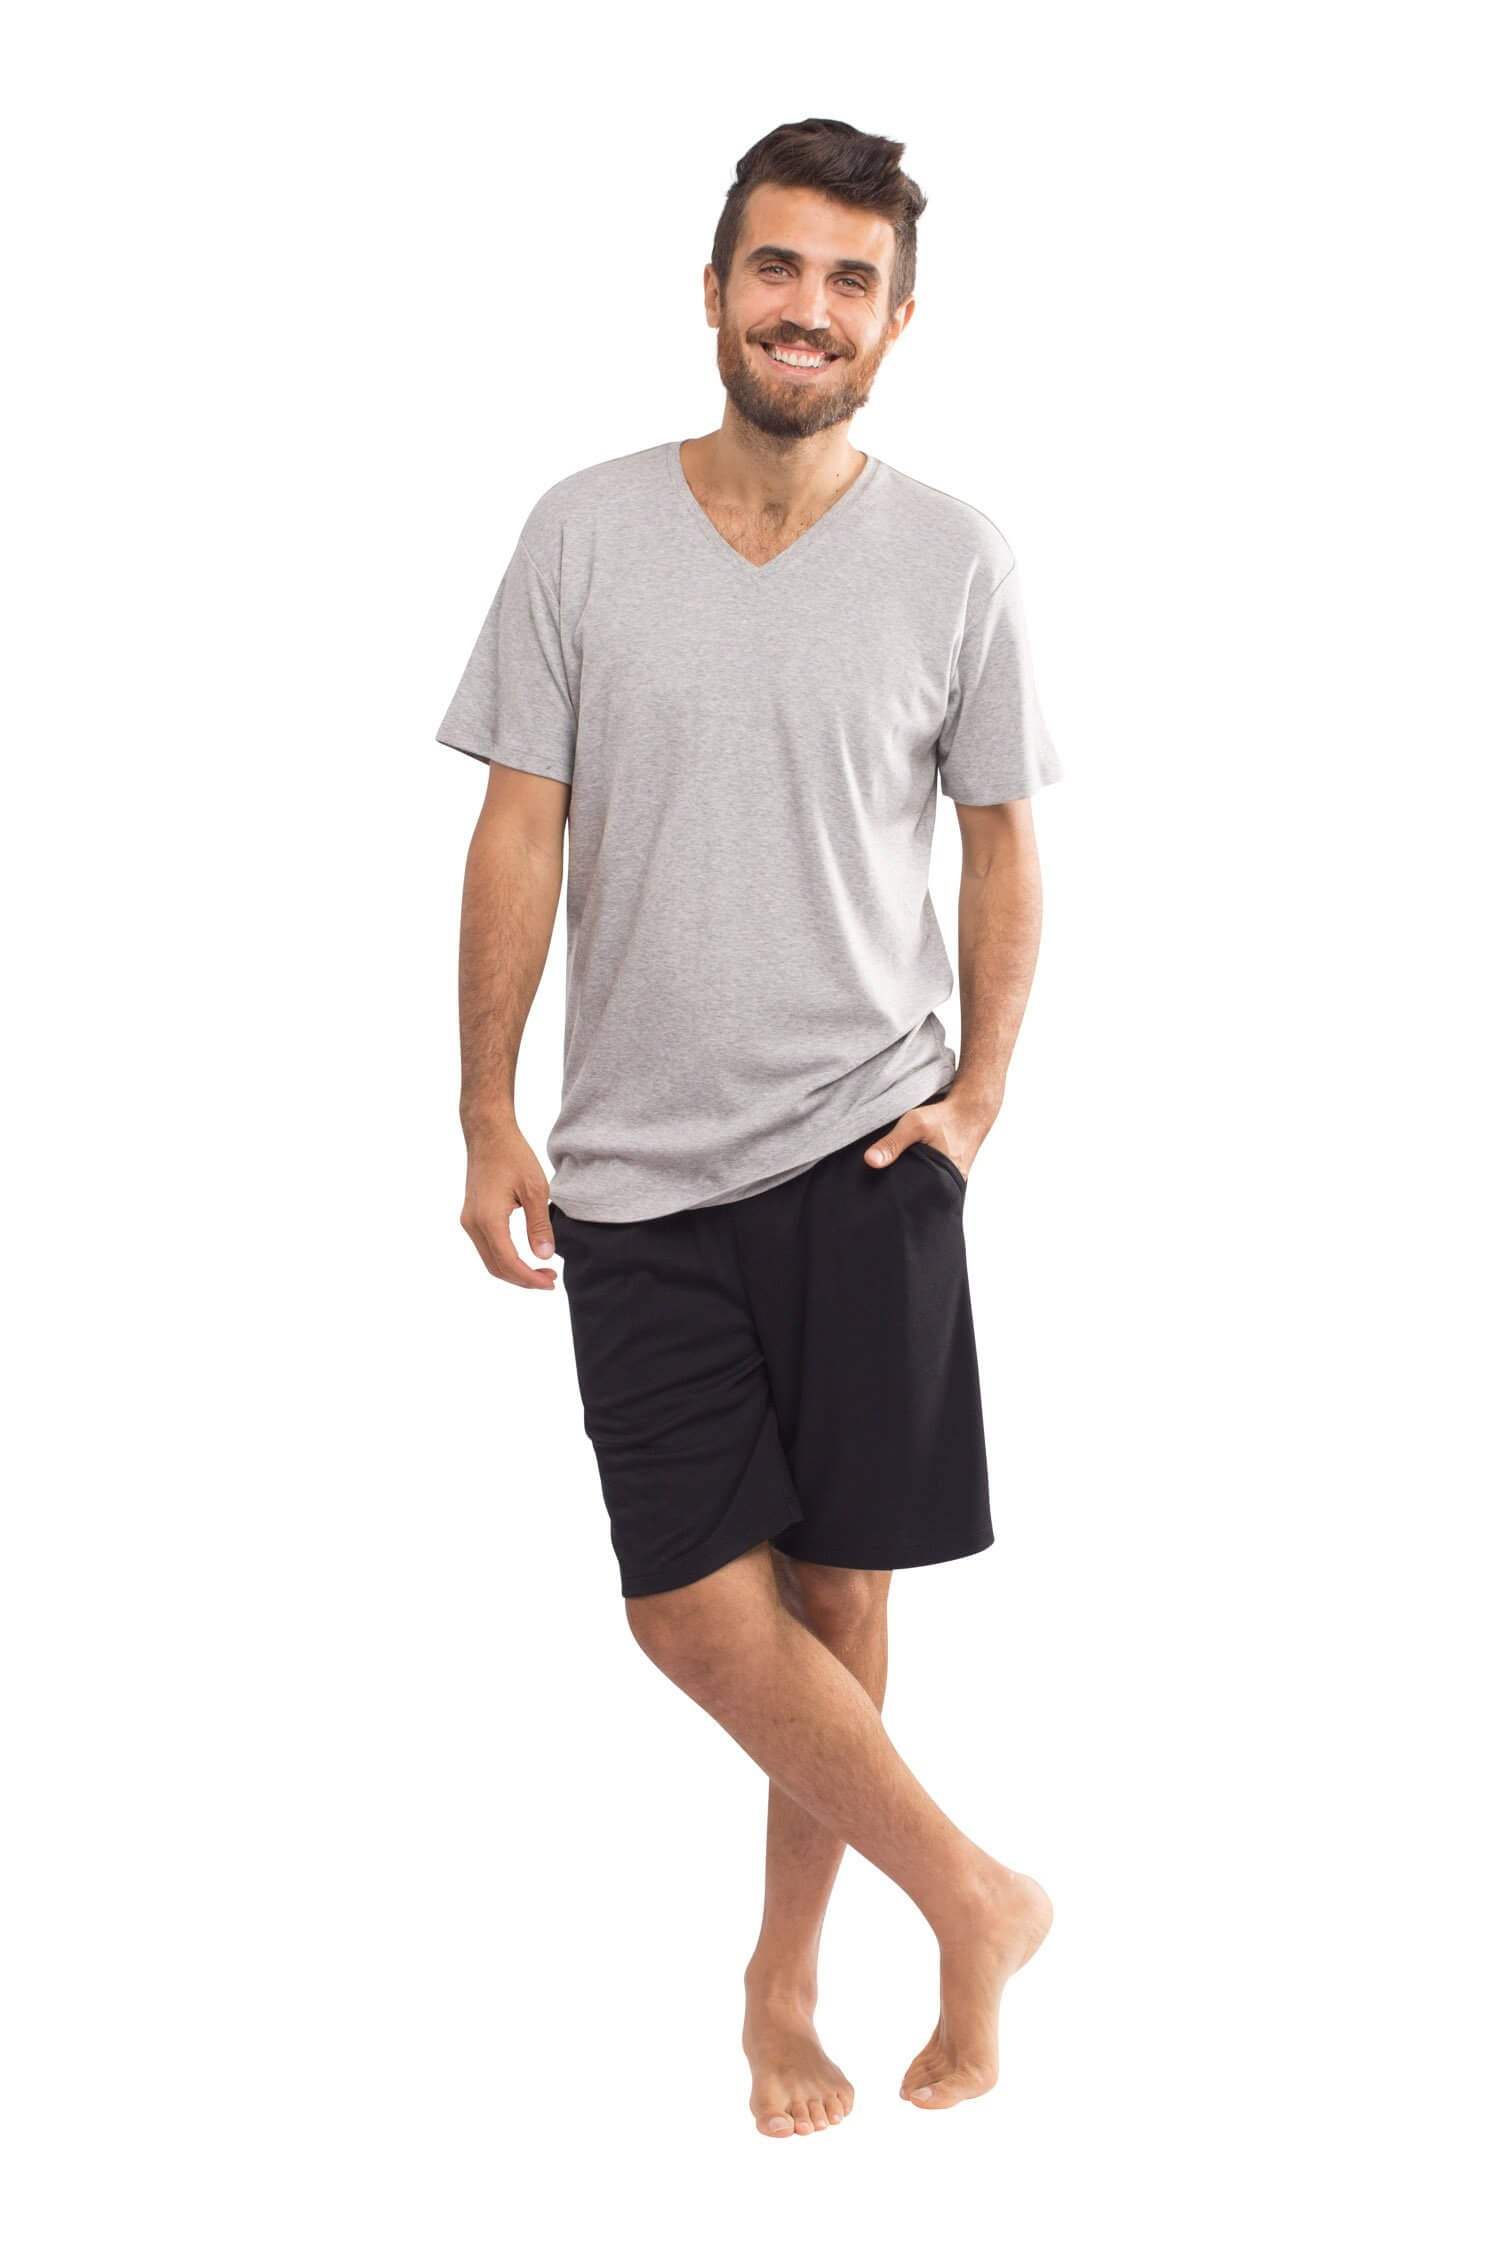 The Men's Weekender Shorts in Black & Heather Grey